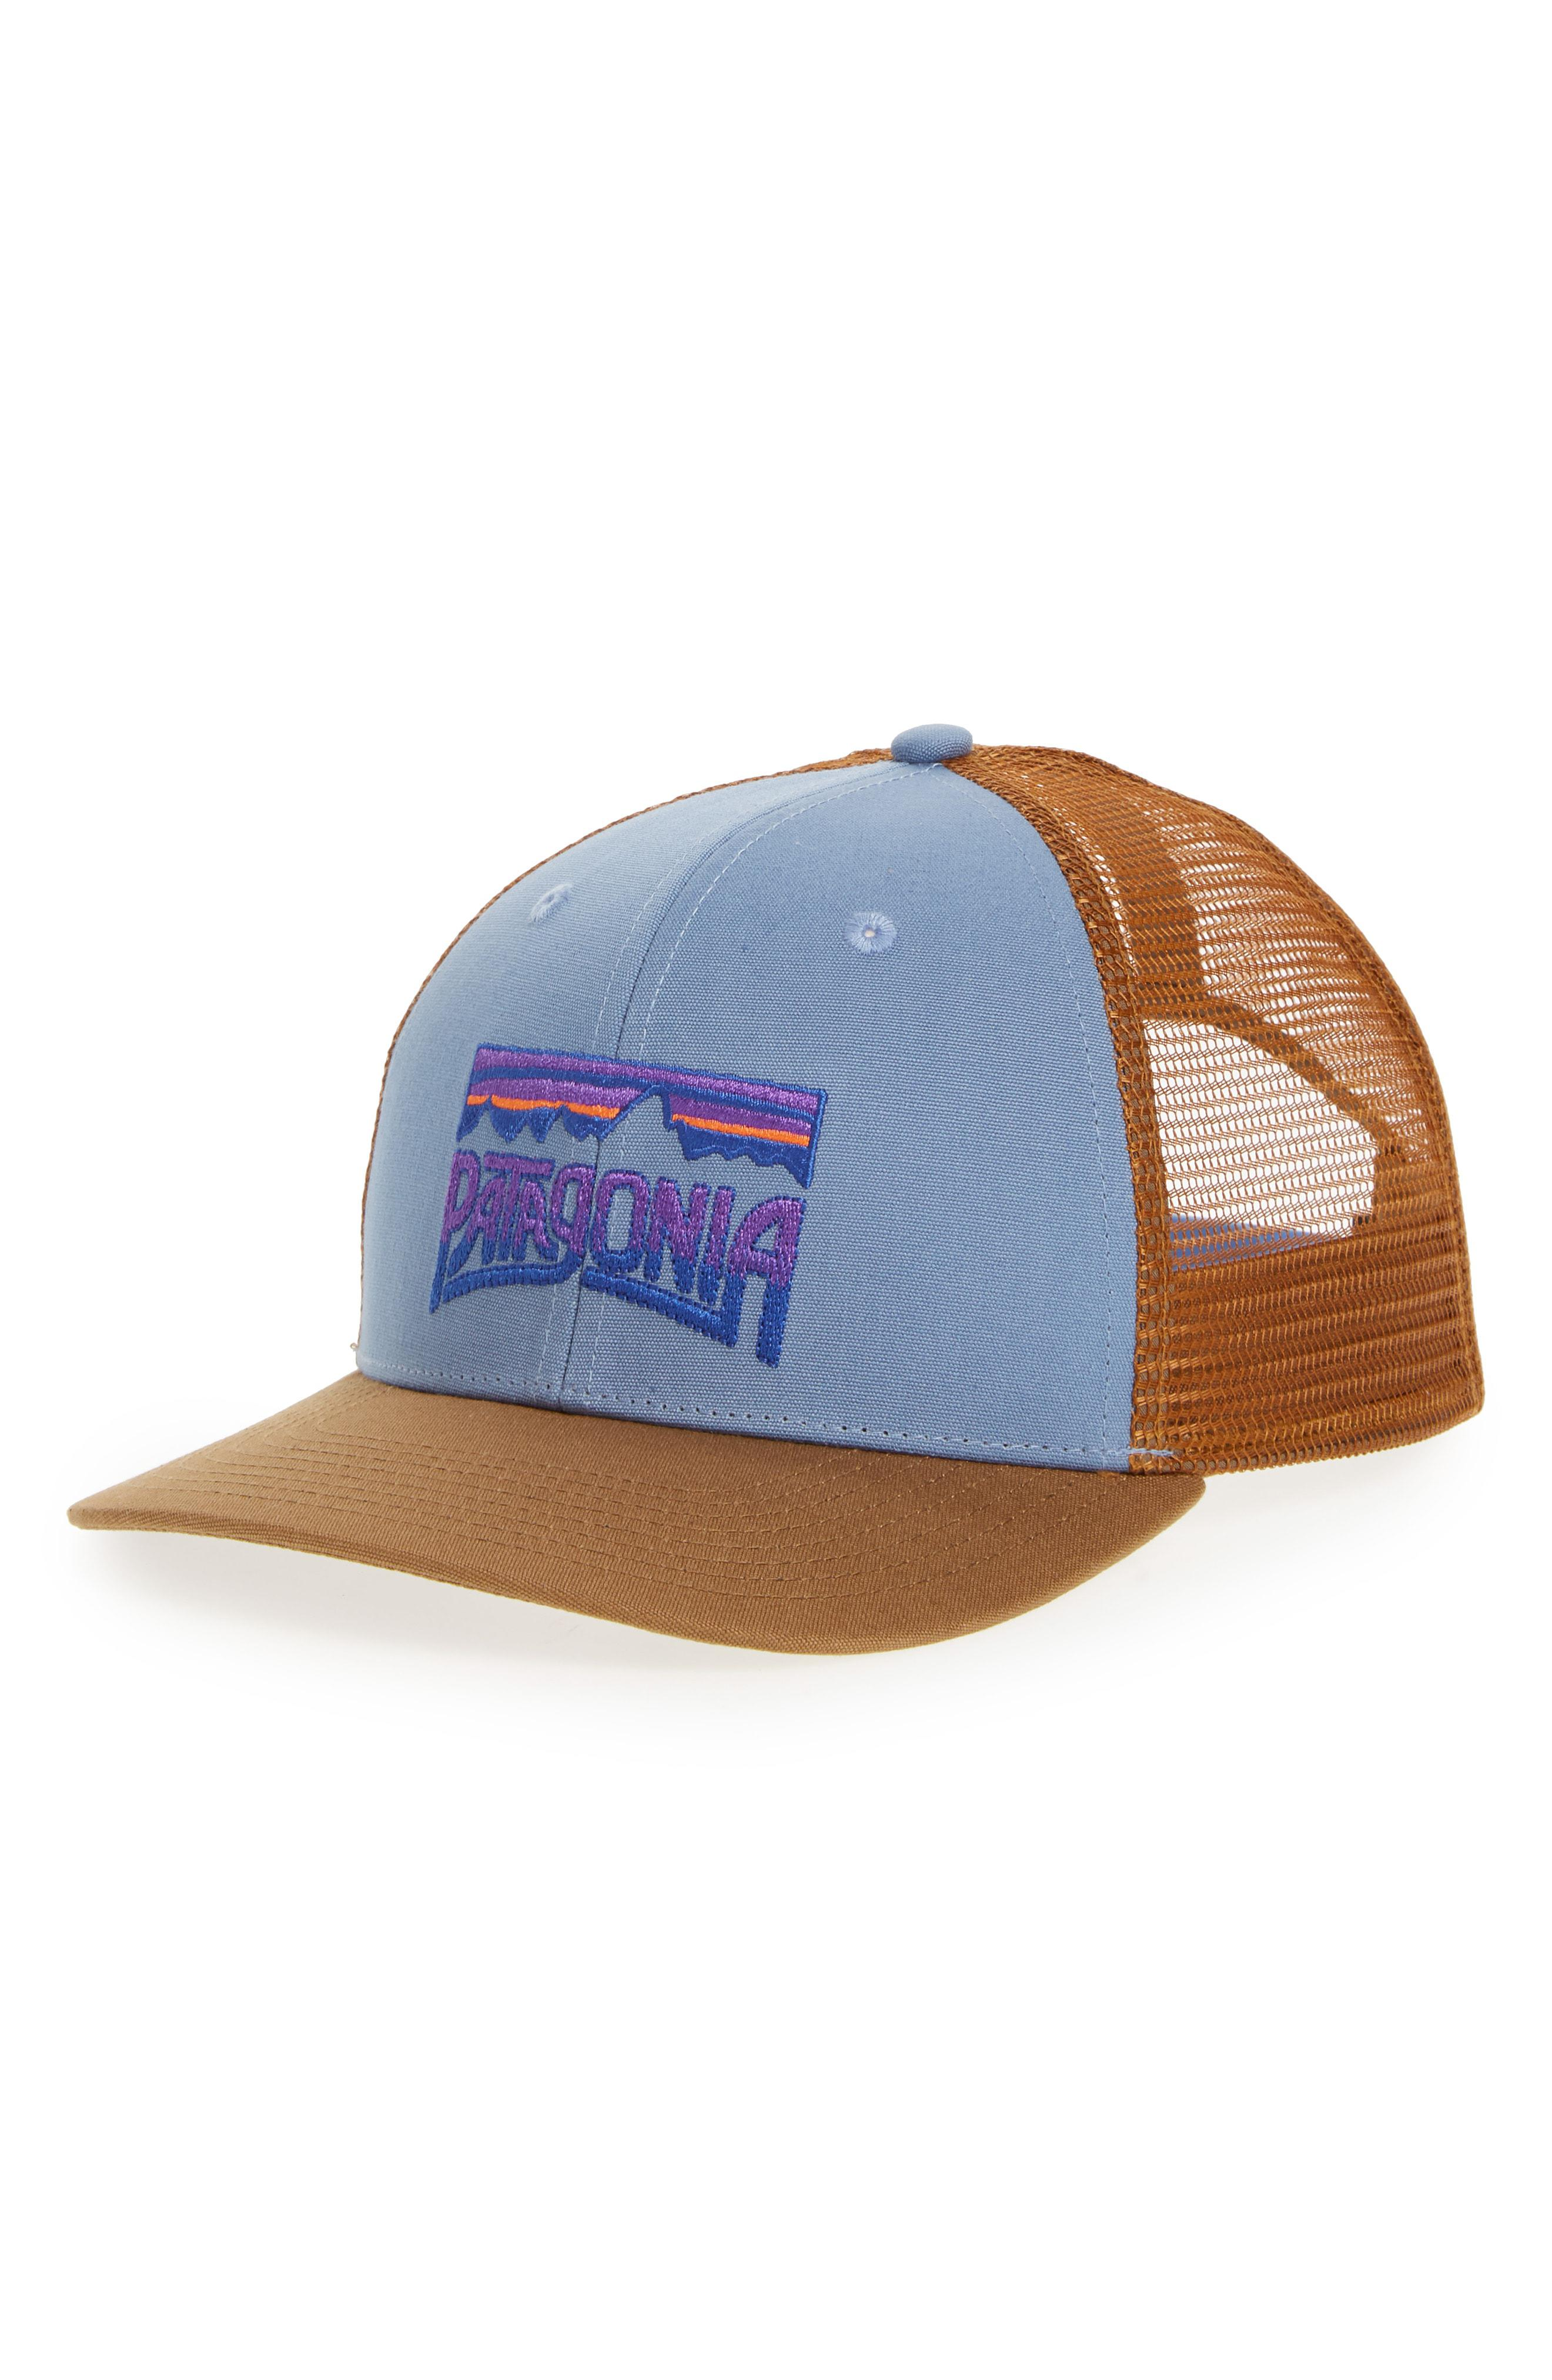 Lyst - Patagonia Fitz Roy Frostbite Trucker Cap - for Men 487658e12d26